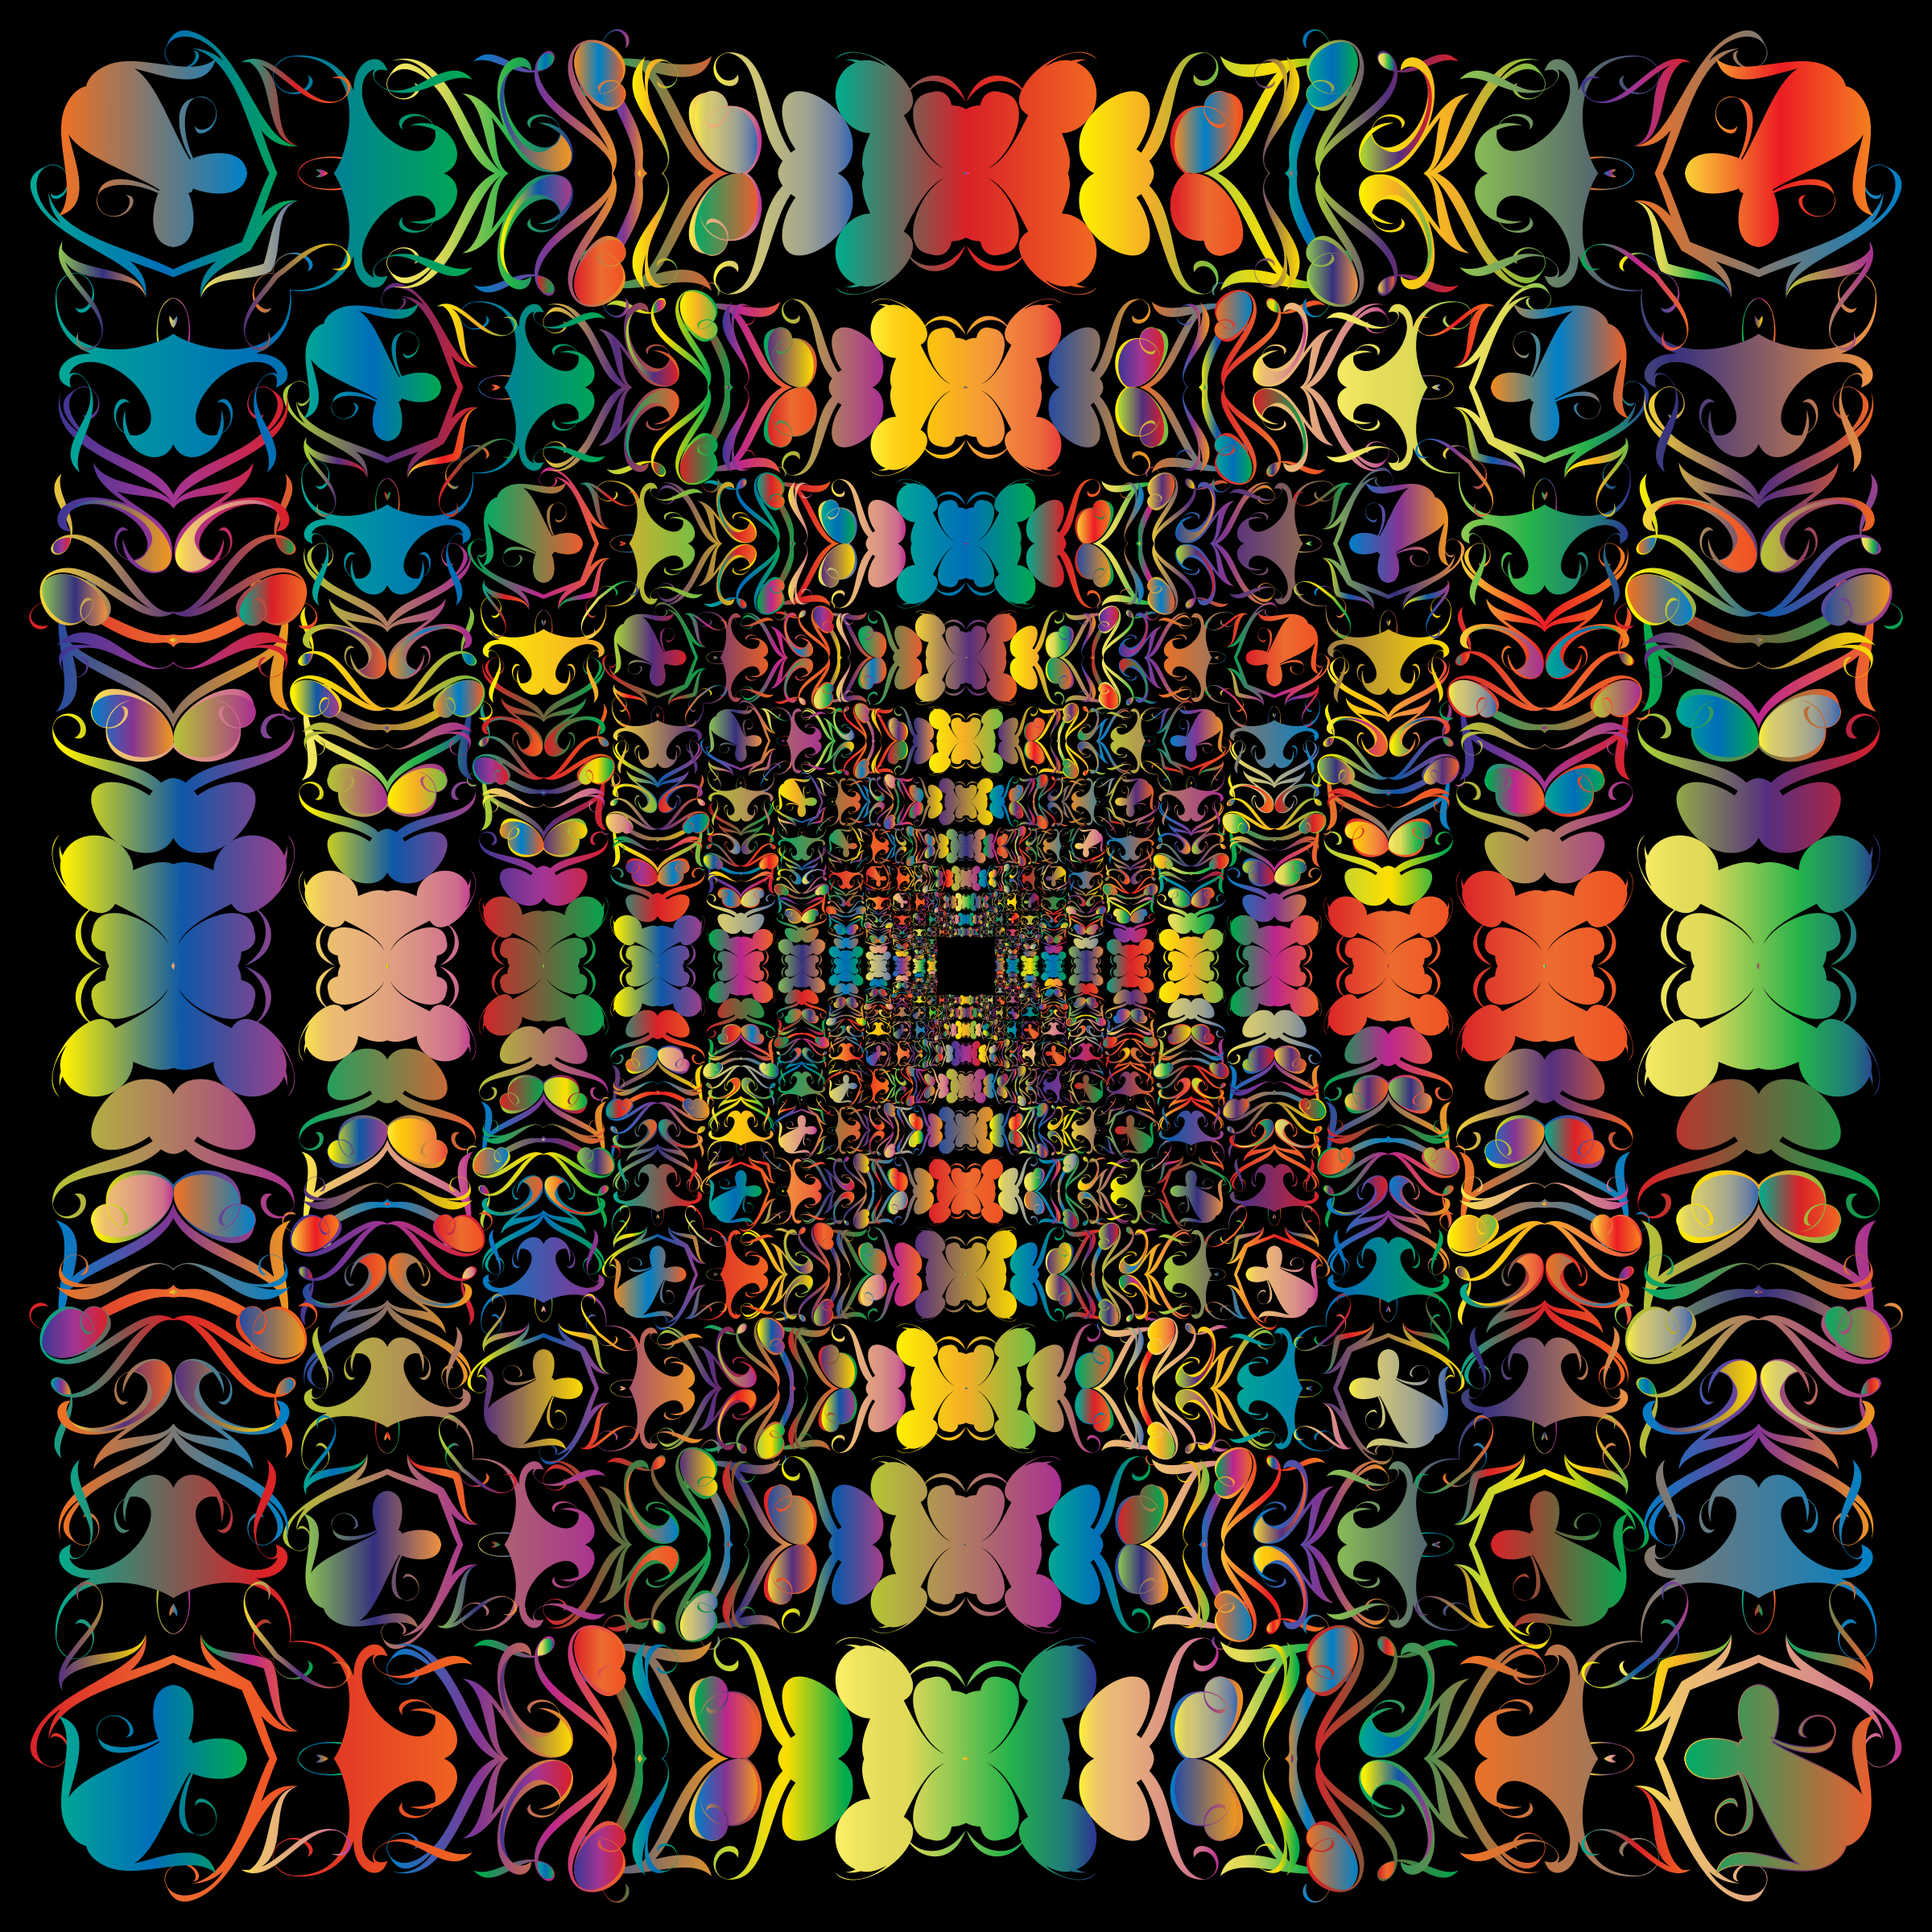 Prismatic Abstract Tribal Style Design 2 by GDJ